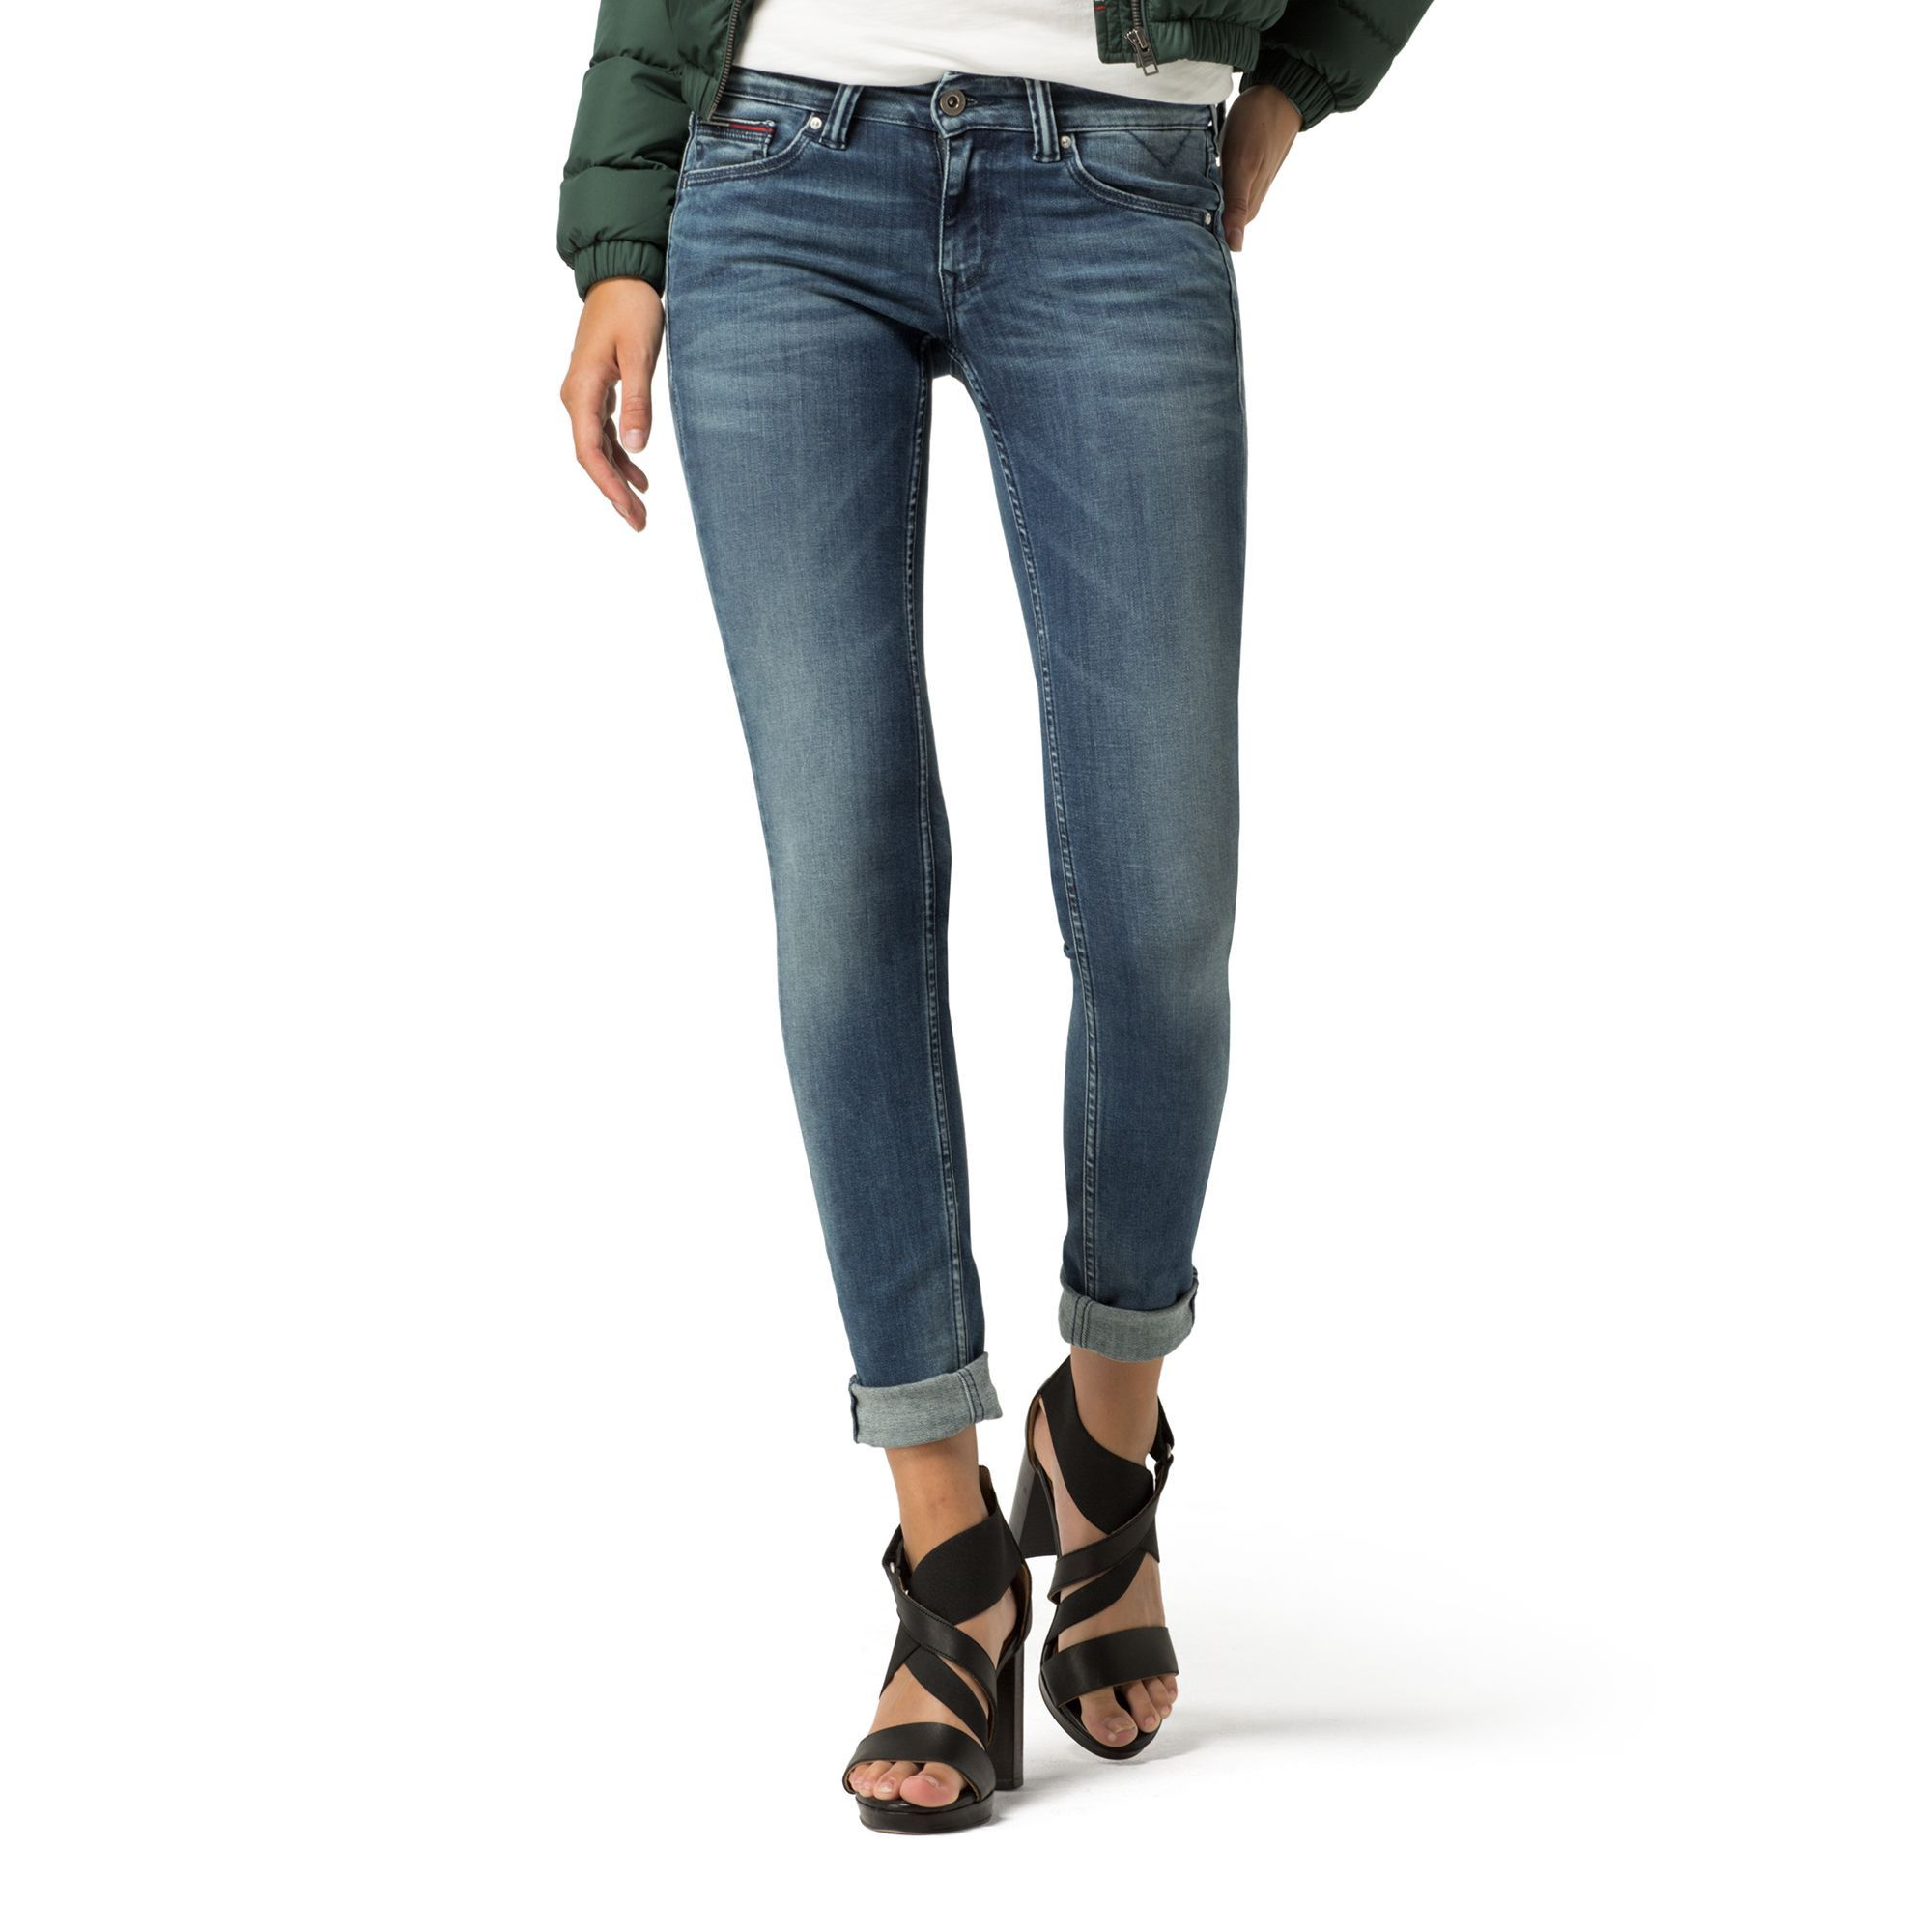 Skinny Comfort Stretch Jeans - Sales Up to -50% Tommy Hilfiger Pre Order For Sale eeEN8Q